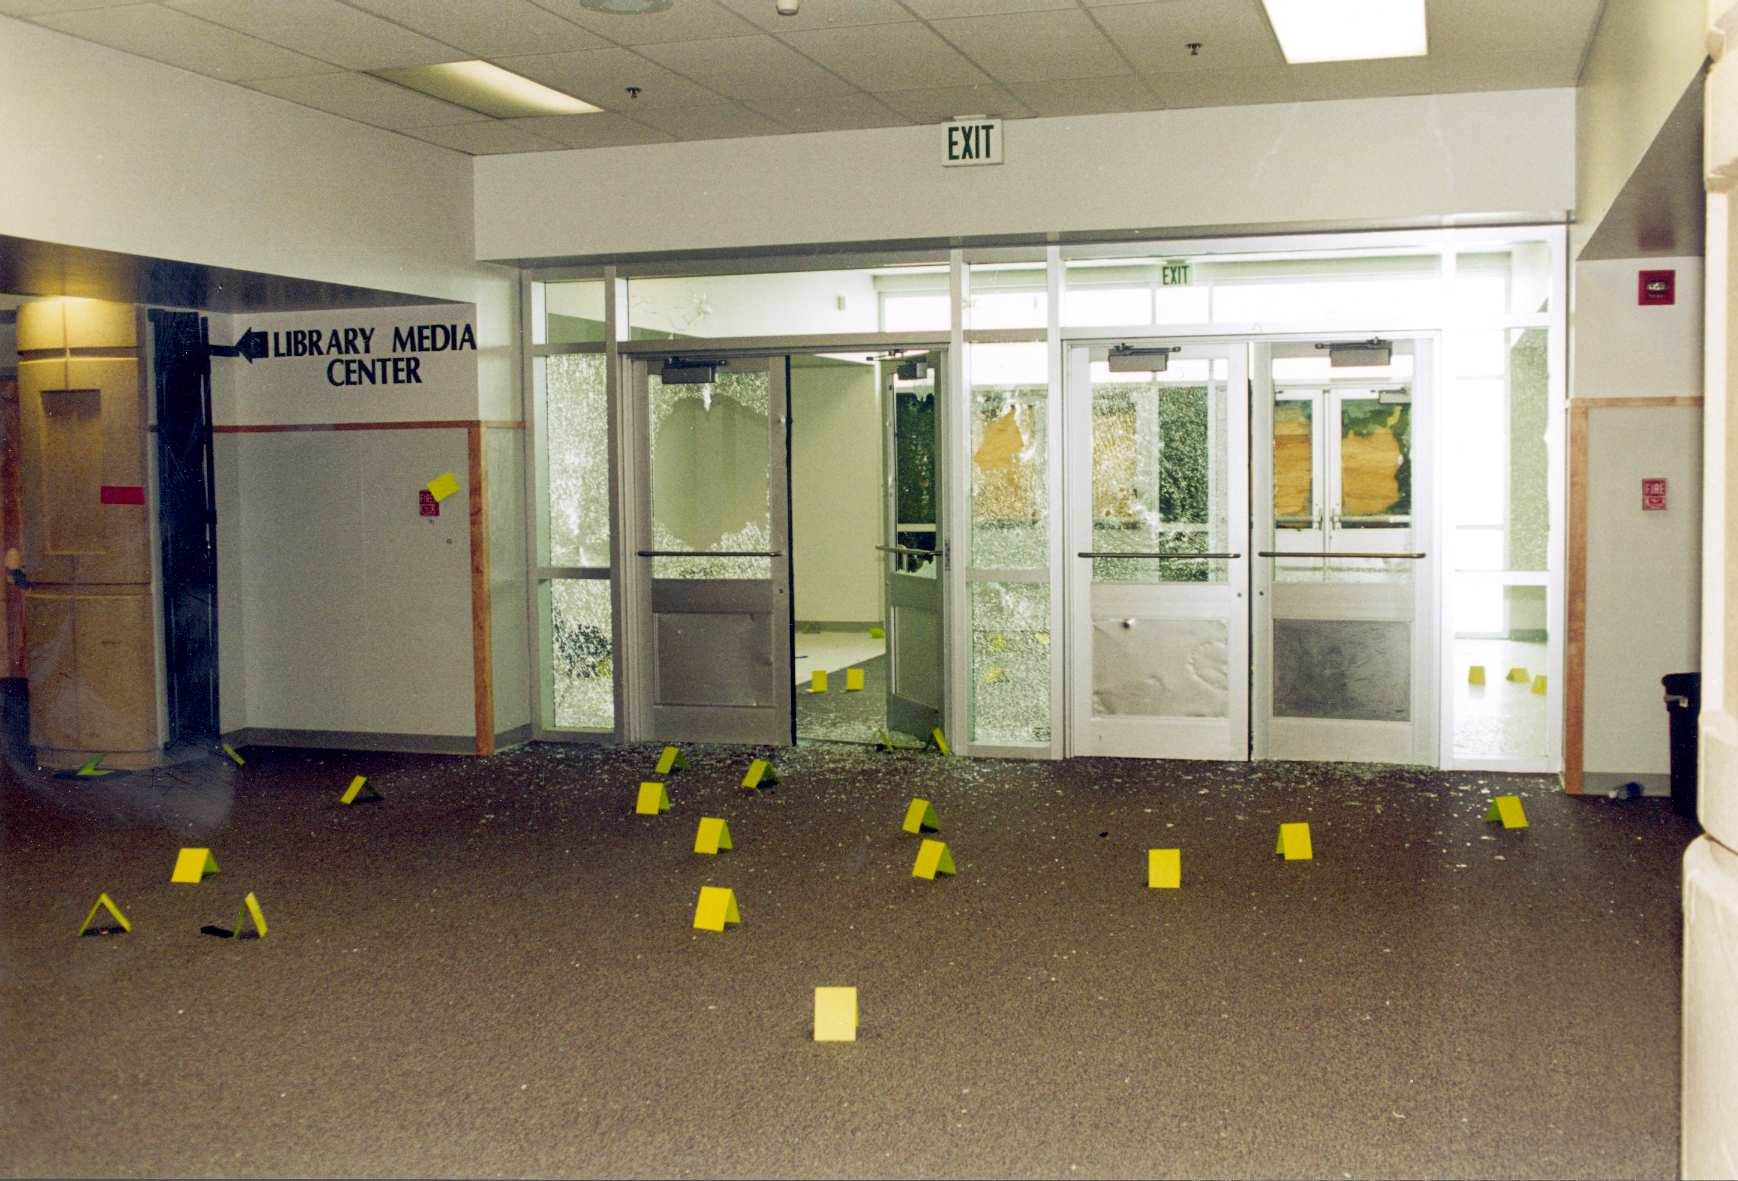 the details of the tragic shooting event at columbine high school Top 10 infamous mass shootings in the us subscribe   these violent tragedies are a sobering reminder of how quickly life can change joi.